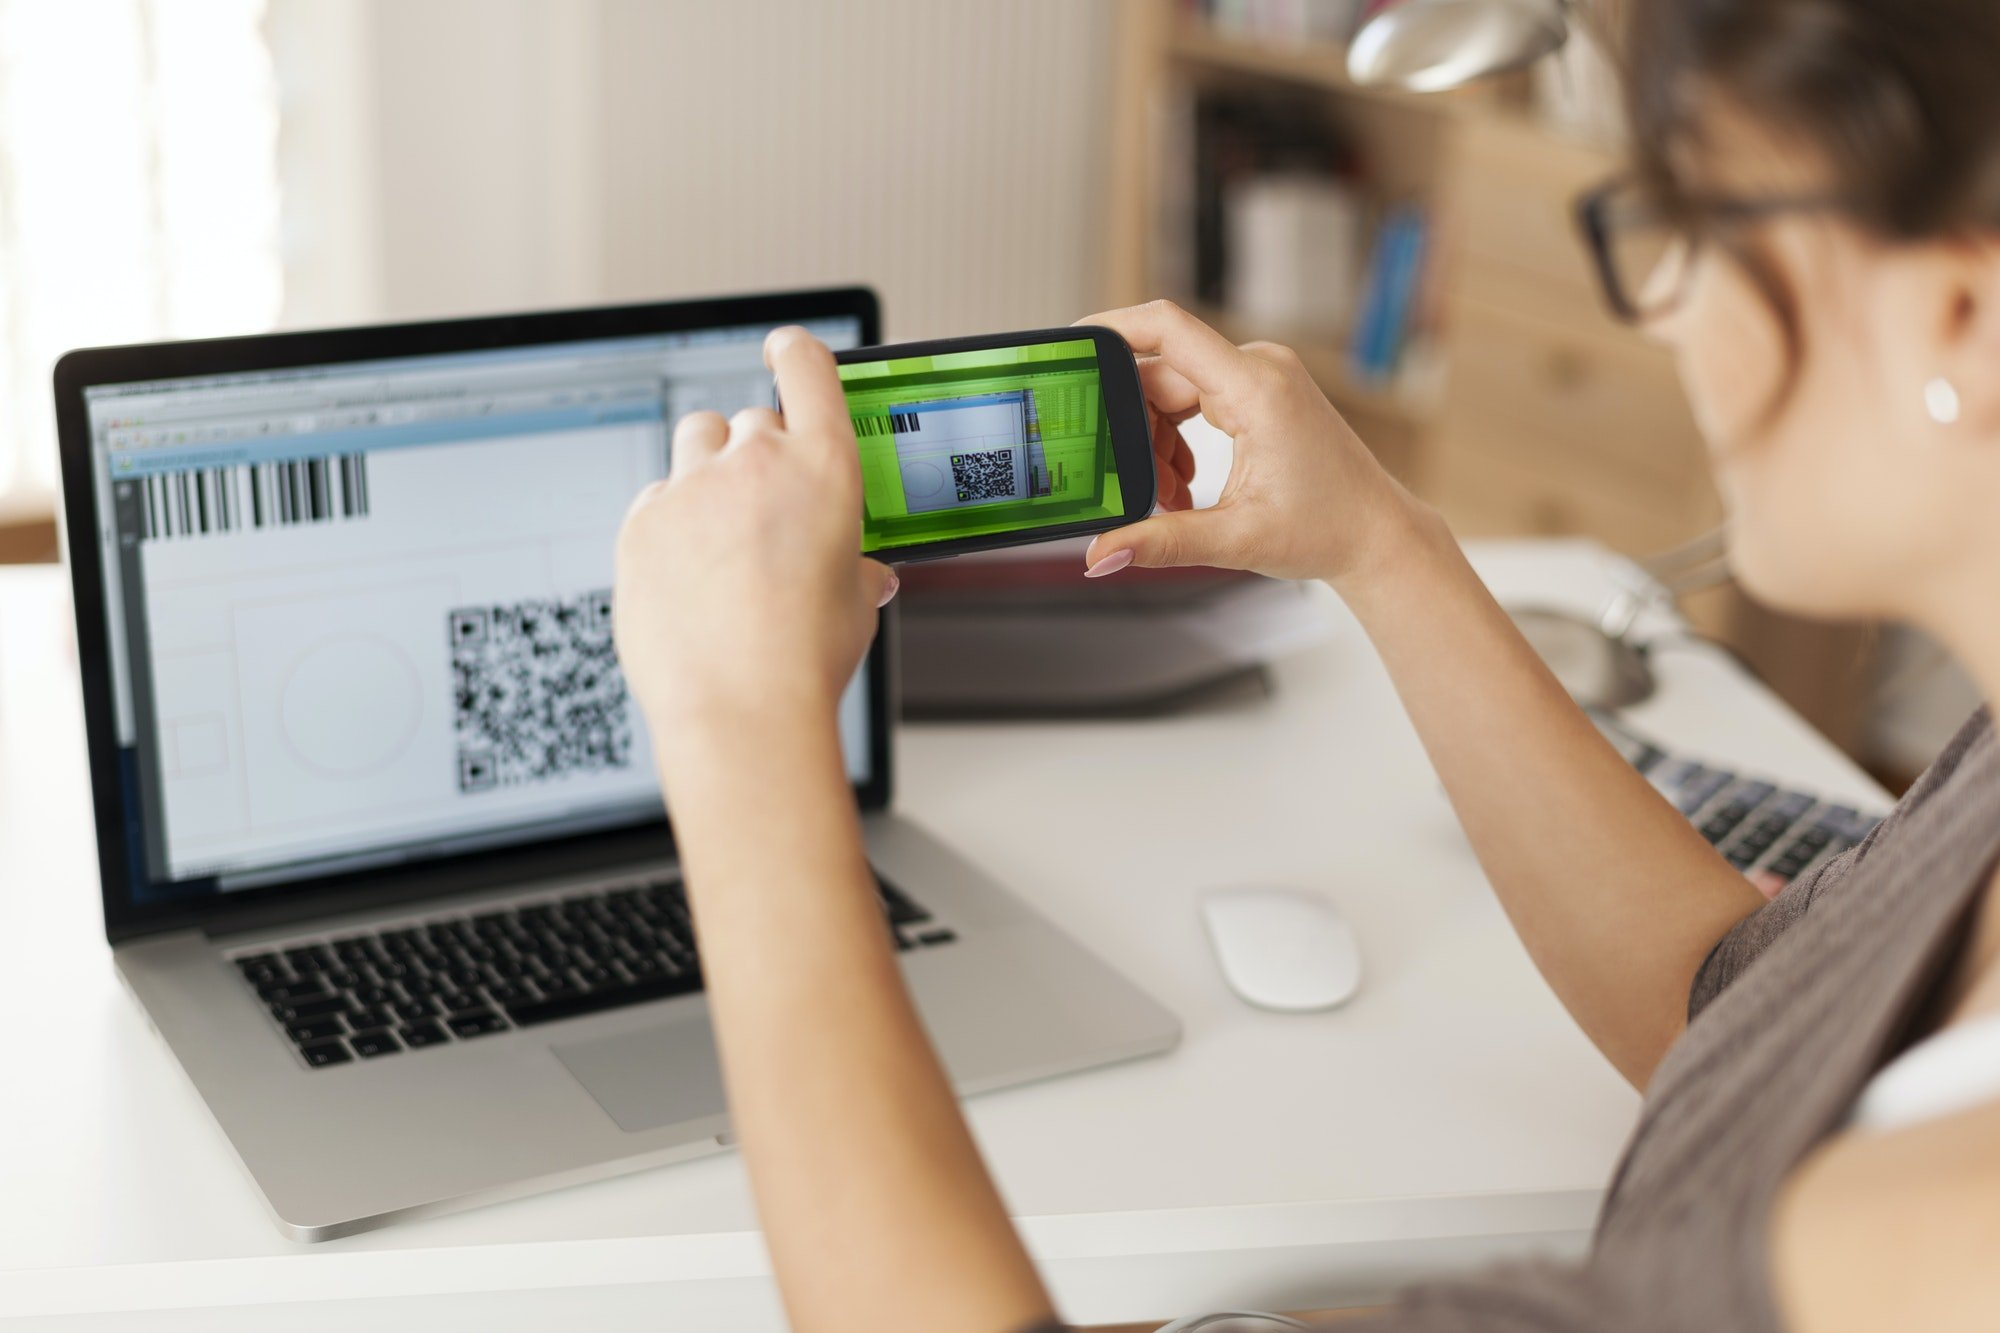 Paying bills by scanning qr code is faster and easier